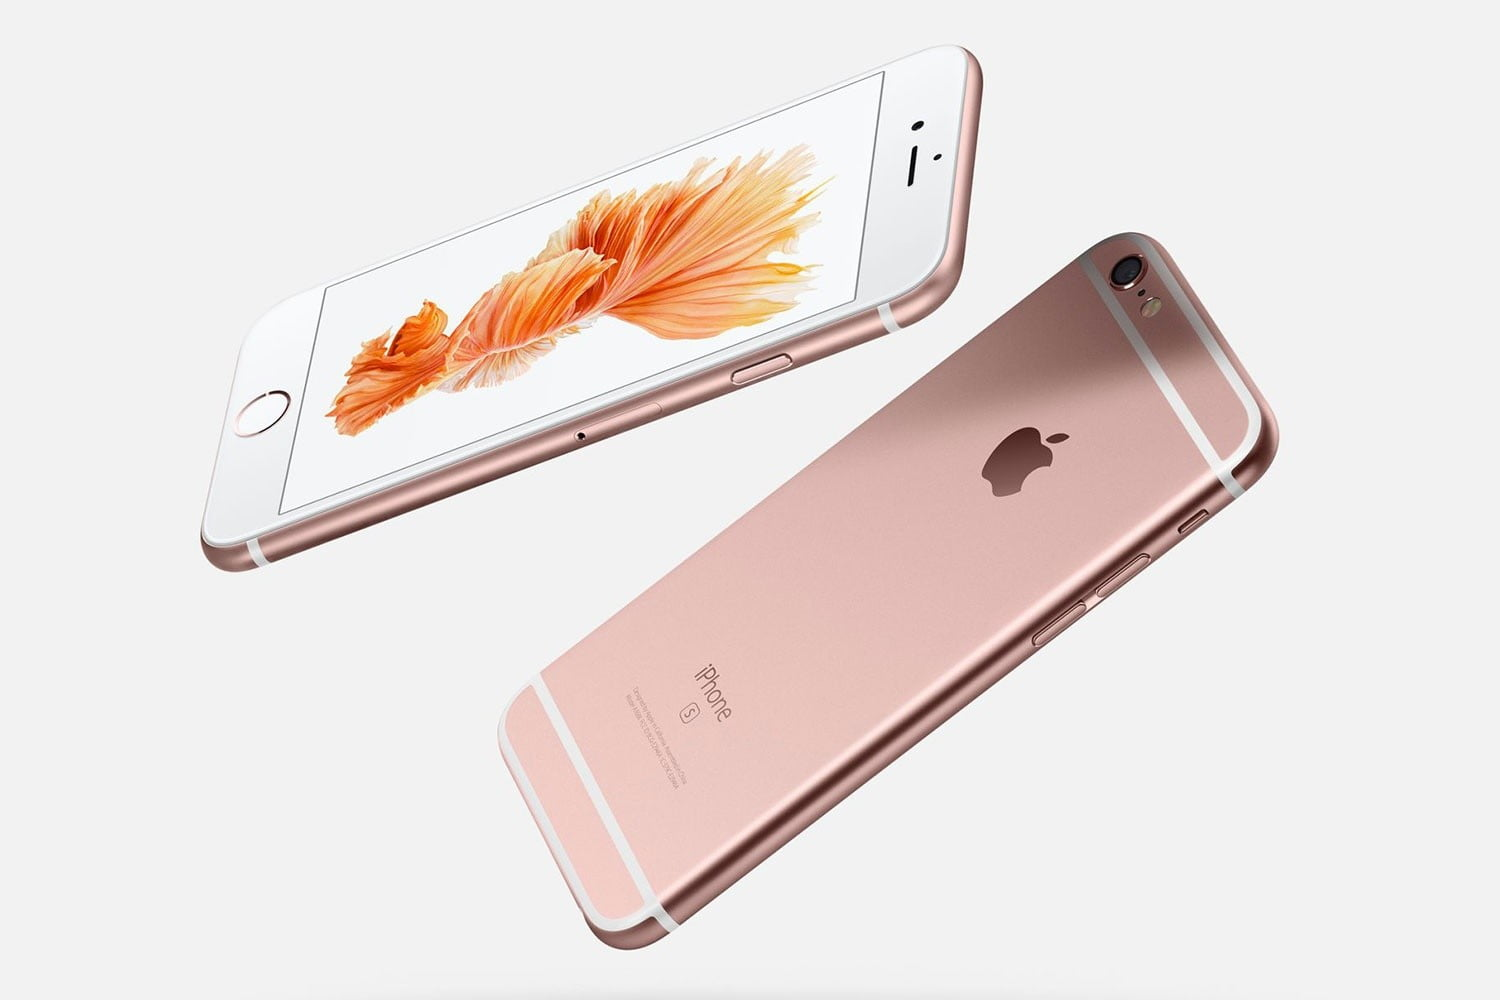 best refurbished apple products iphone6s-gallery1-2015-1500x1000